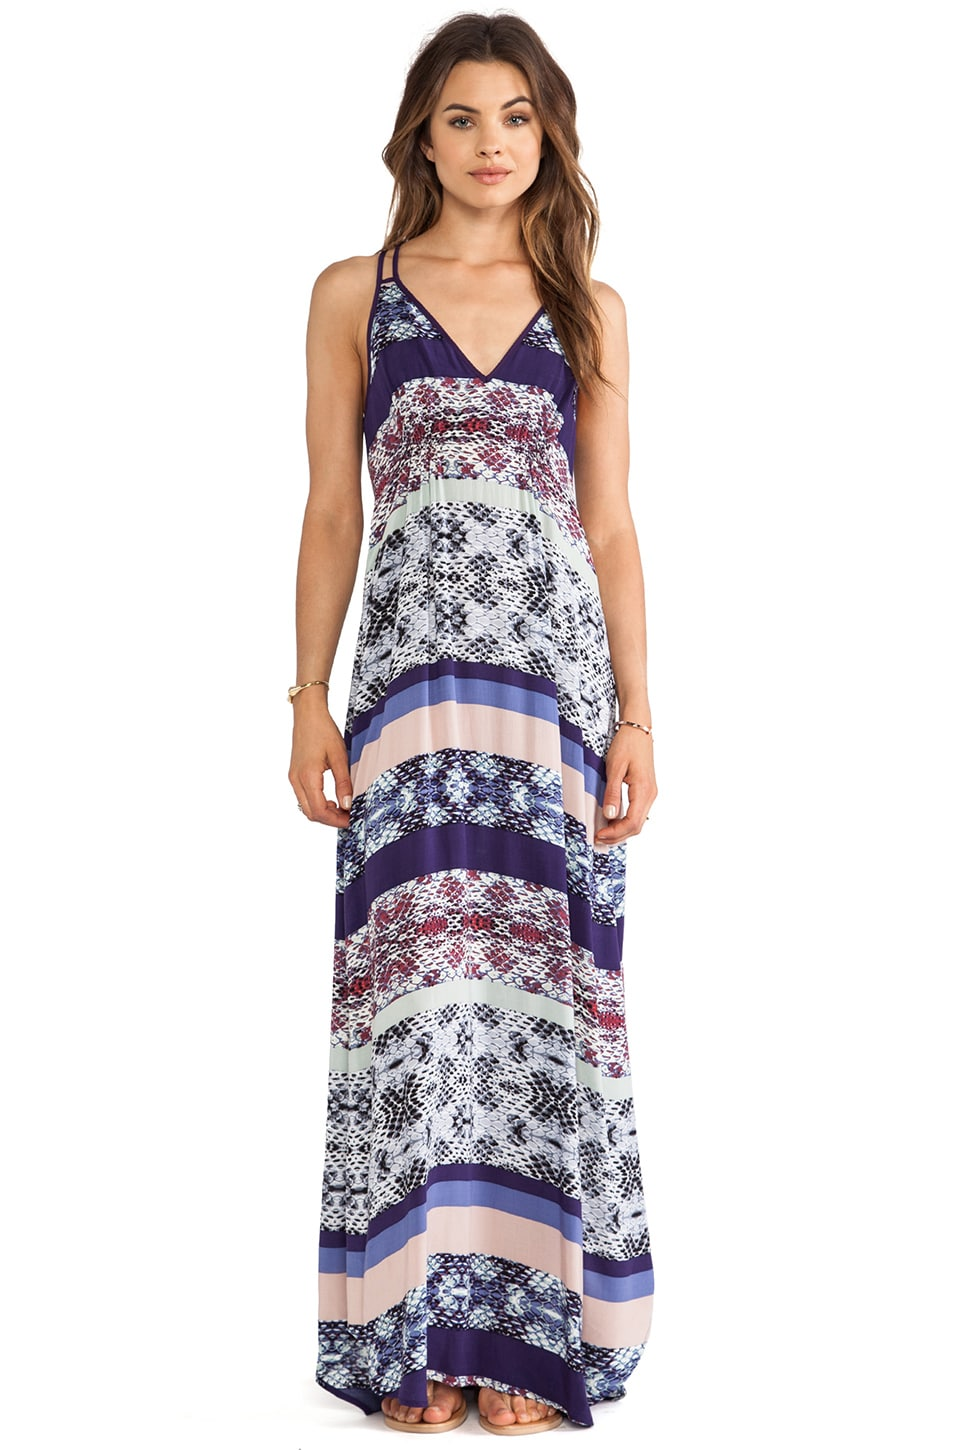 Eight Sixty Racerback Maxi Dress in Wisteria & Multi